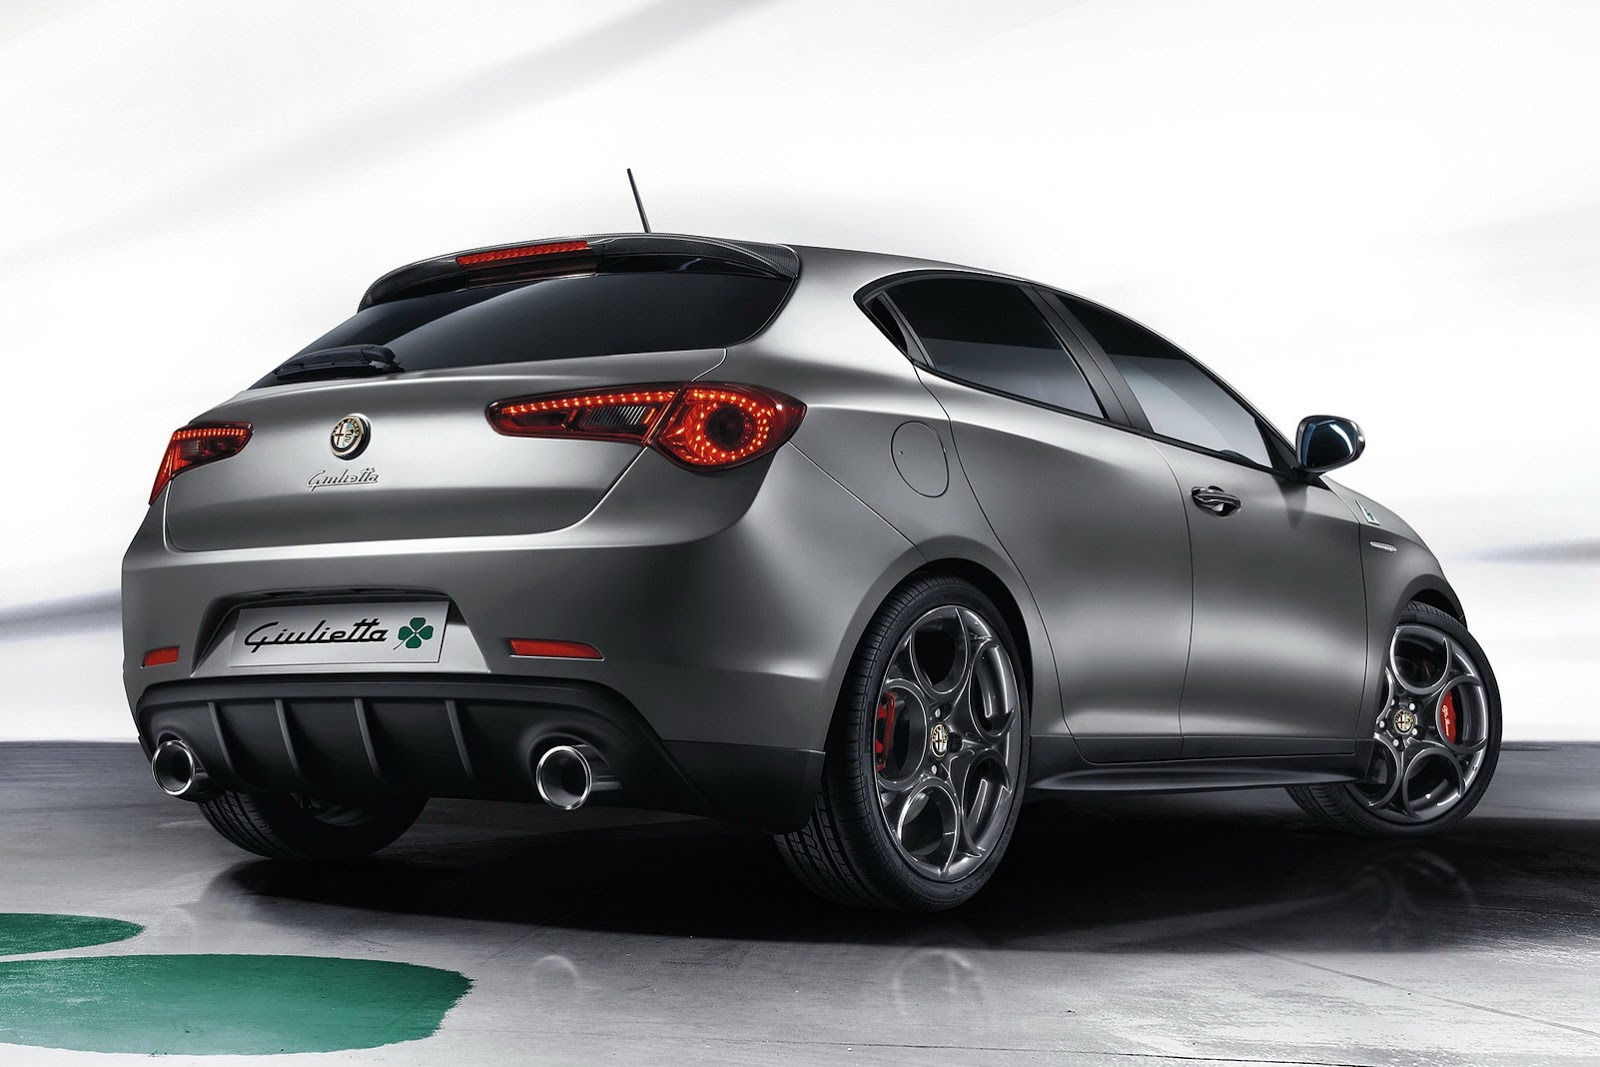 alfa romeo actualiza el mito y giulietta quadrifoglio verde auto blog. Black Bedroom Furniture Sets. Home Design Ideas